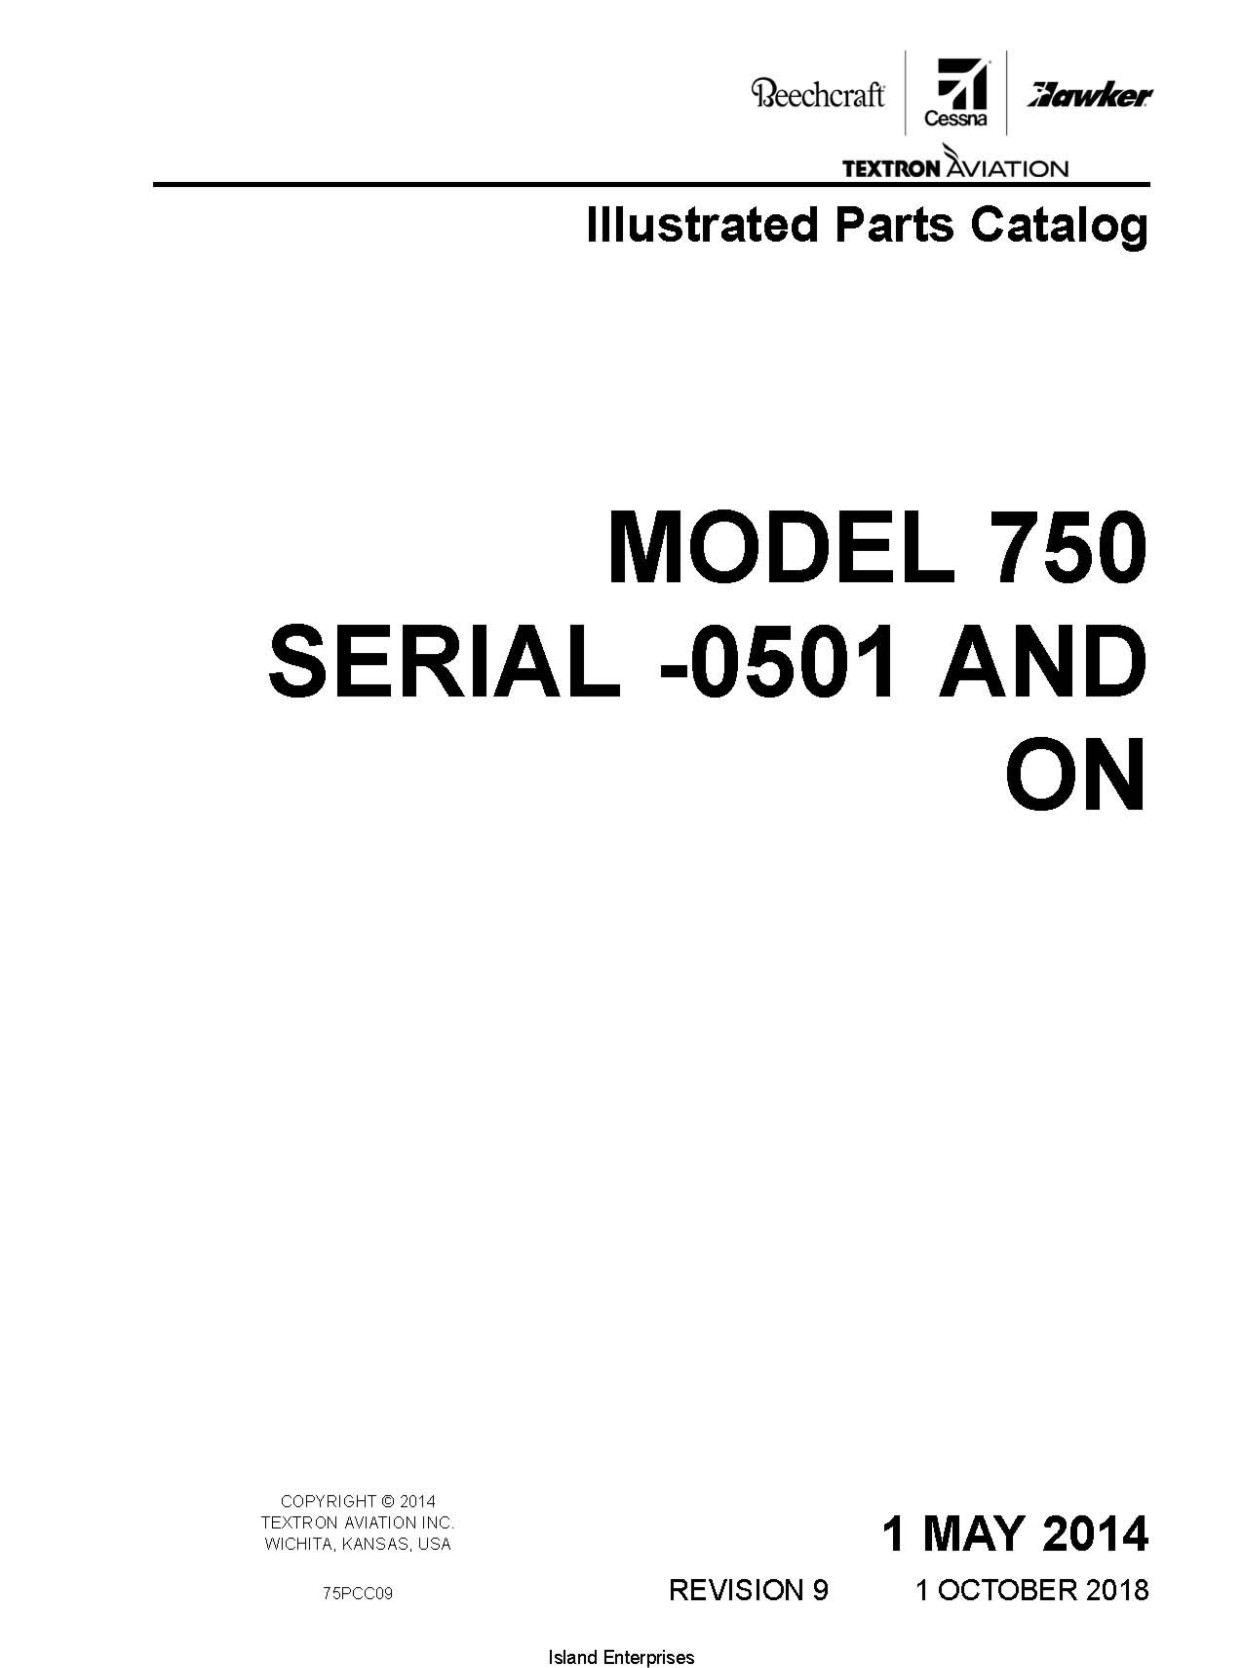 Cessna Model 750 Illustrated Parts Catalog 75pcc09